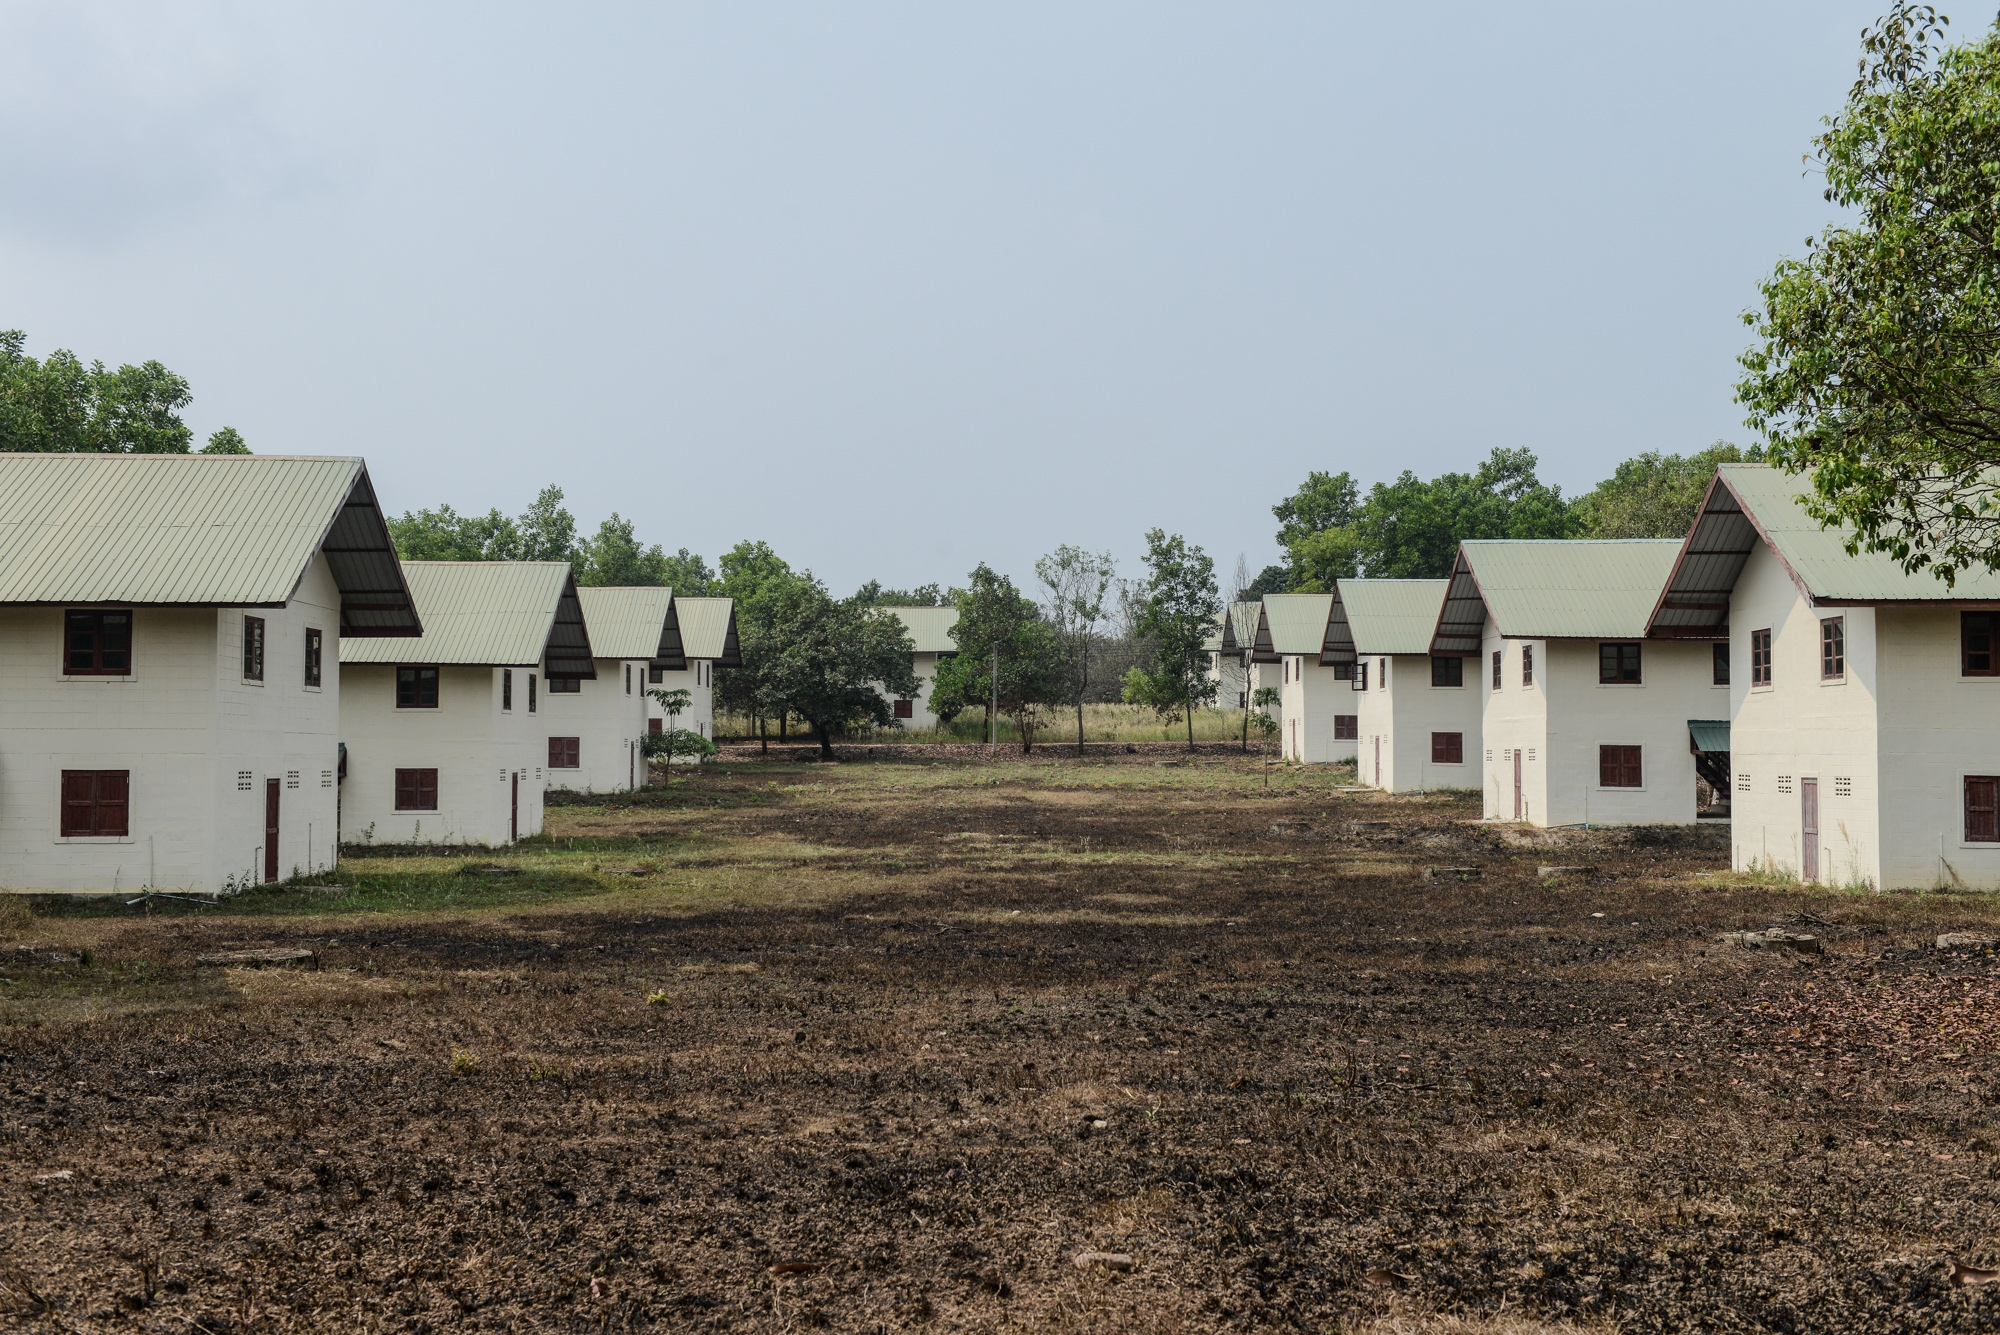 The relocation site at Bawa was built by the Italian-Thai Development Corporation Limited (ITD). Those who were affected by the SEZ land acquisition are allowed to settle in this resettlement community but these induced resettlements have negative impacts on their livelihood activities and also capabilities of communities.